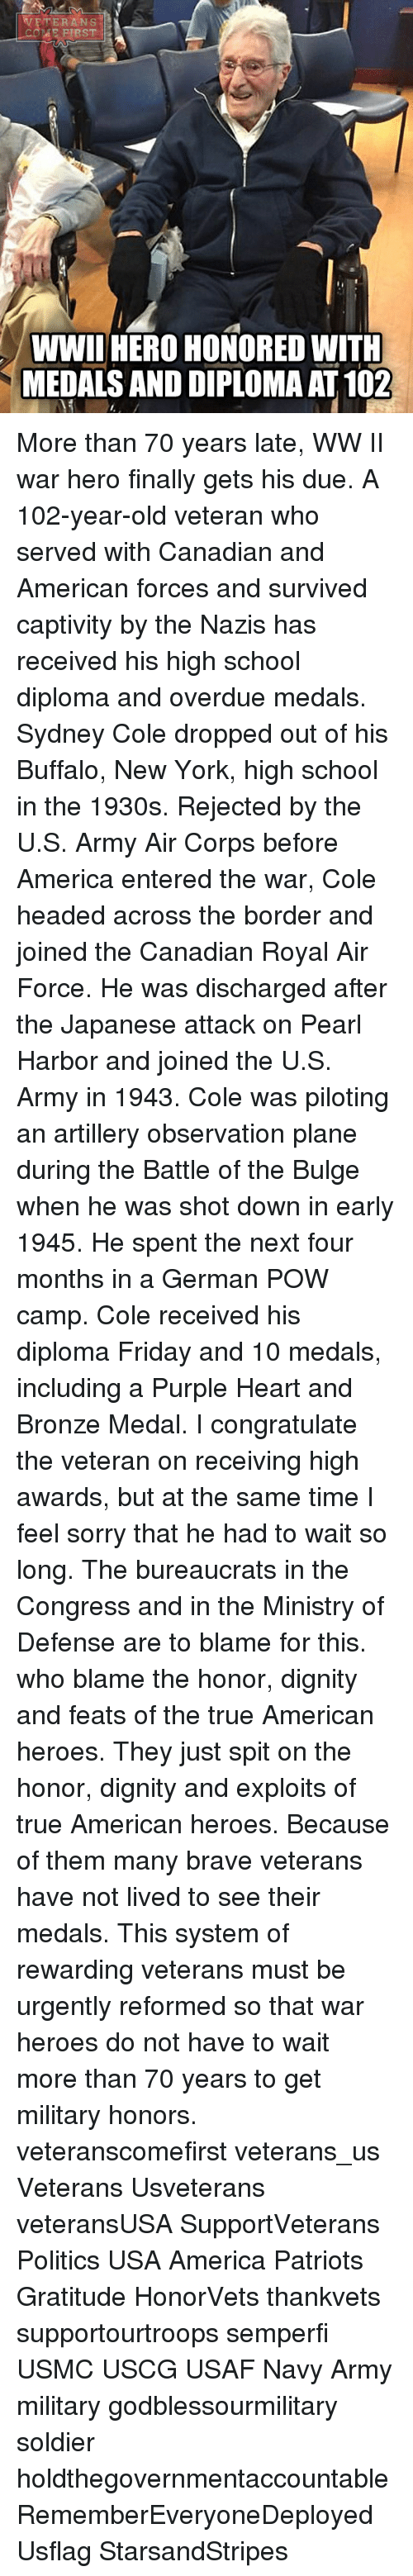 America, Friday, and Memes: TERANS  FIRST  WWII HERO HONORED WITH  MEDALS AND DIPLOMAAT 102 More than 70 years late, WW II war hero finally gets his due. A 102-year-old veteran who served with Canadian and American forces and survived captivity by the Nazis has received his high school diploma and overdue medals. Sydney Cole dropped out of his Buffalo, New York, high school in the 1930s. Rejected by the U.S. Army Air Corps before America entered the war, Cole headed across the border and joined the Canadian Royal Air Force. He was discharged after the Japanese attack on Pearl Harbor and joined the U.S. Army in 1943. Cole was piloting an artillery observation plane during the Battle of the Bulge when he was shot down in early 1945. He spent the next four months in a German POW camp. Cole received his diploma Friday and 10 medals, including a Purple Heart and Bronze Medal. I congratulate the veteran on receiving high awards, but at the same time I feel sorry that he had to wait so long. The bureaucrats in the Congress and in the Ministry of Defense are to blame for this. who blame the honor, dignity and feats of the true American heroes. They just spit on the honor, dignity and exploits of true American heroes. Because of them many brave veterans have not lived to see their medals. This system of rewarding veterans must be urgently reformed so that war heroes do not have to wait more than 70 years to get military honors. veteranscomefirst veterans_us Veterans Usveterans veteransUSA SupportVeterans Politics USA America Patriots Gratitude HonorVets thankvets supportourtroops semperfi USMC USCG USAF Navy Army military godblessourmilitary soldier holdthegovernmentaccountable RememberEveryoneDeployed Usflag StarsandStripes